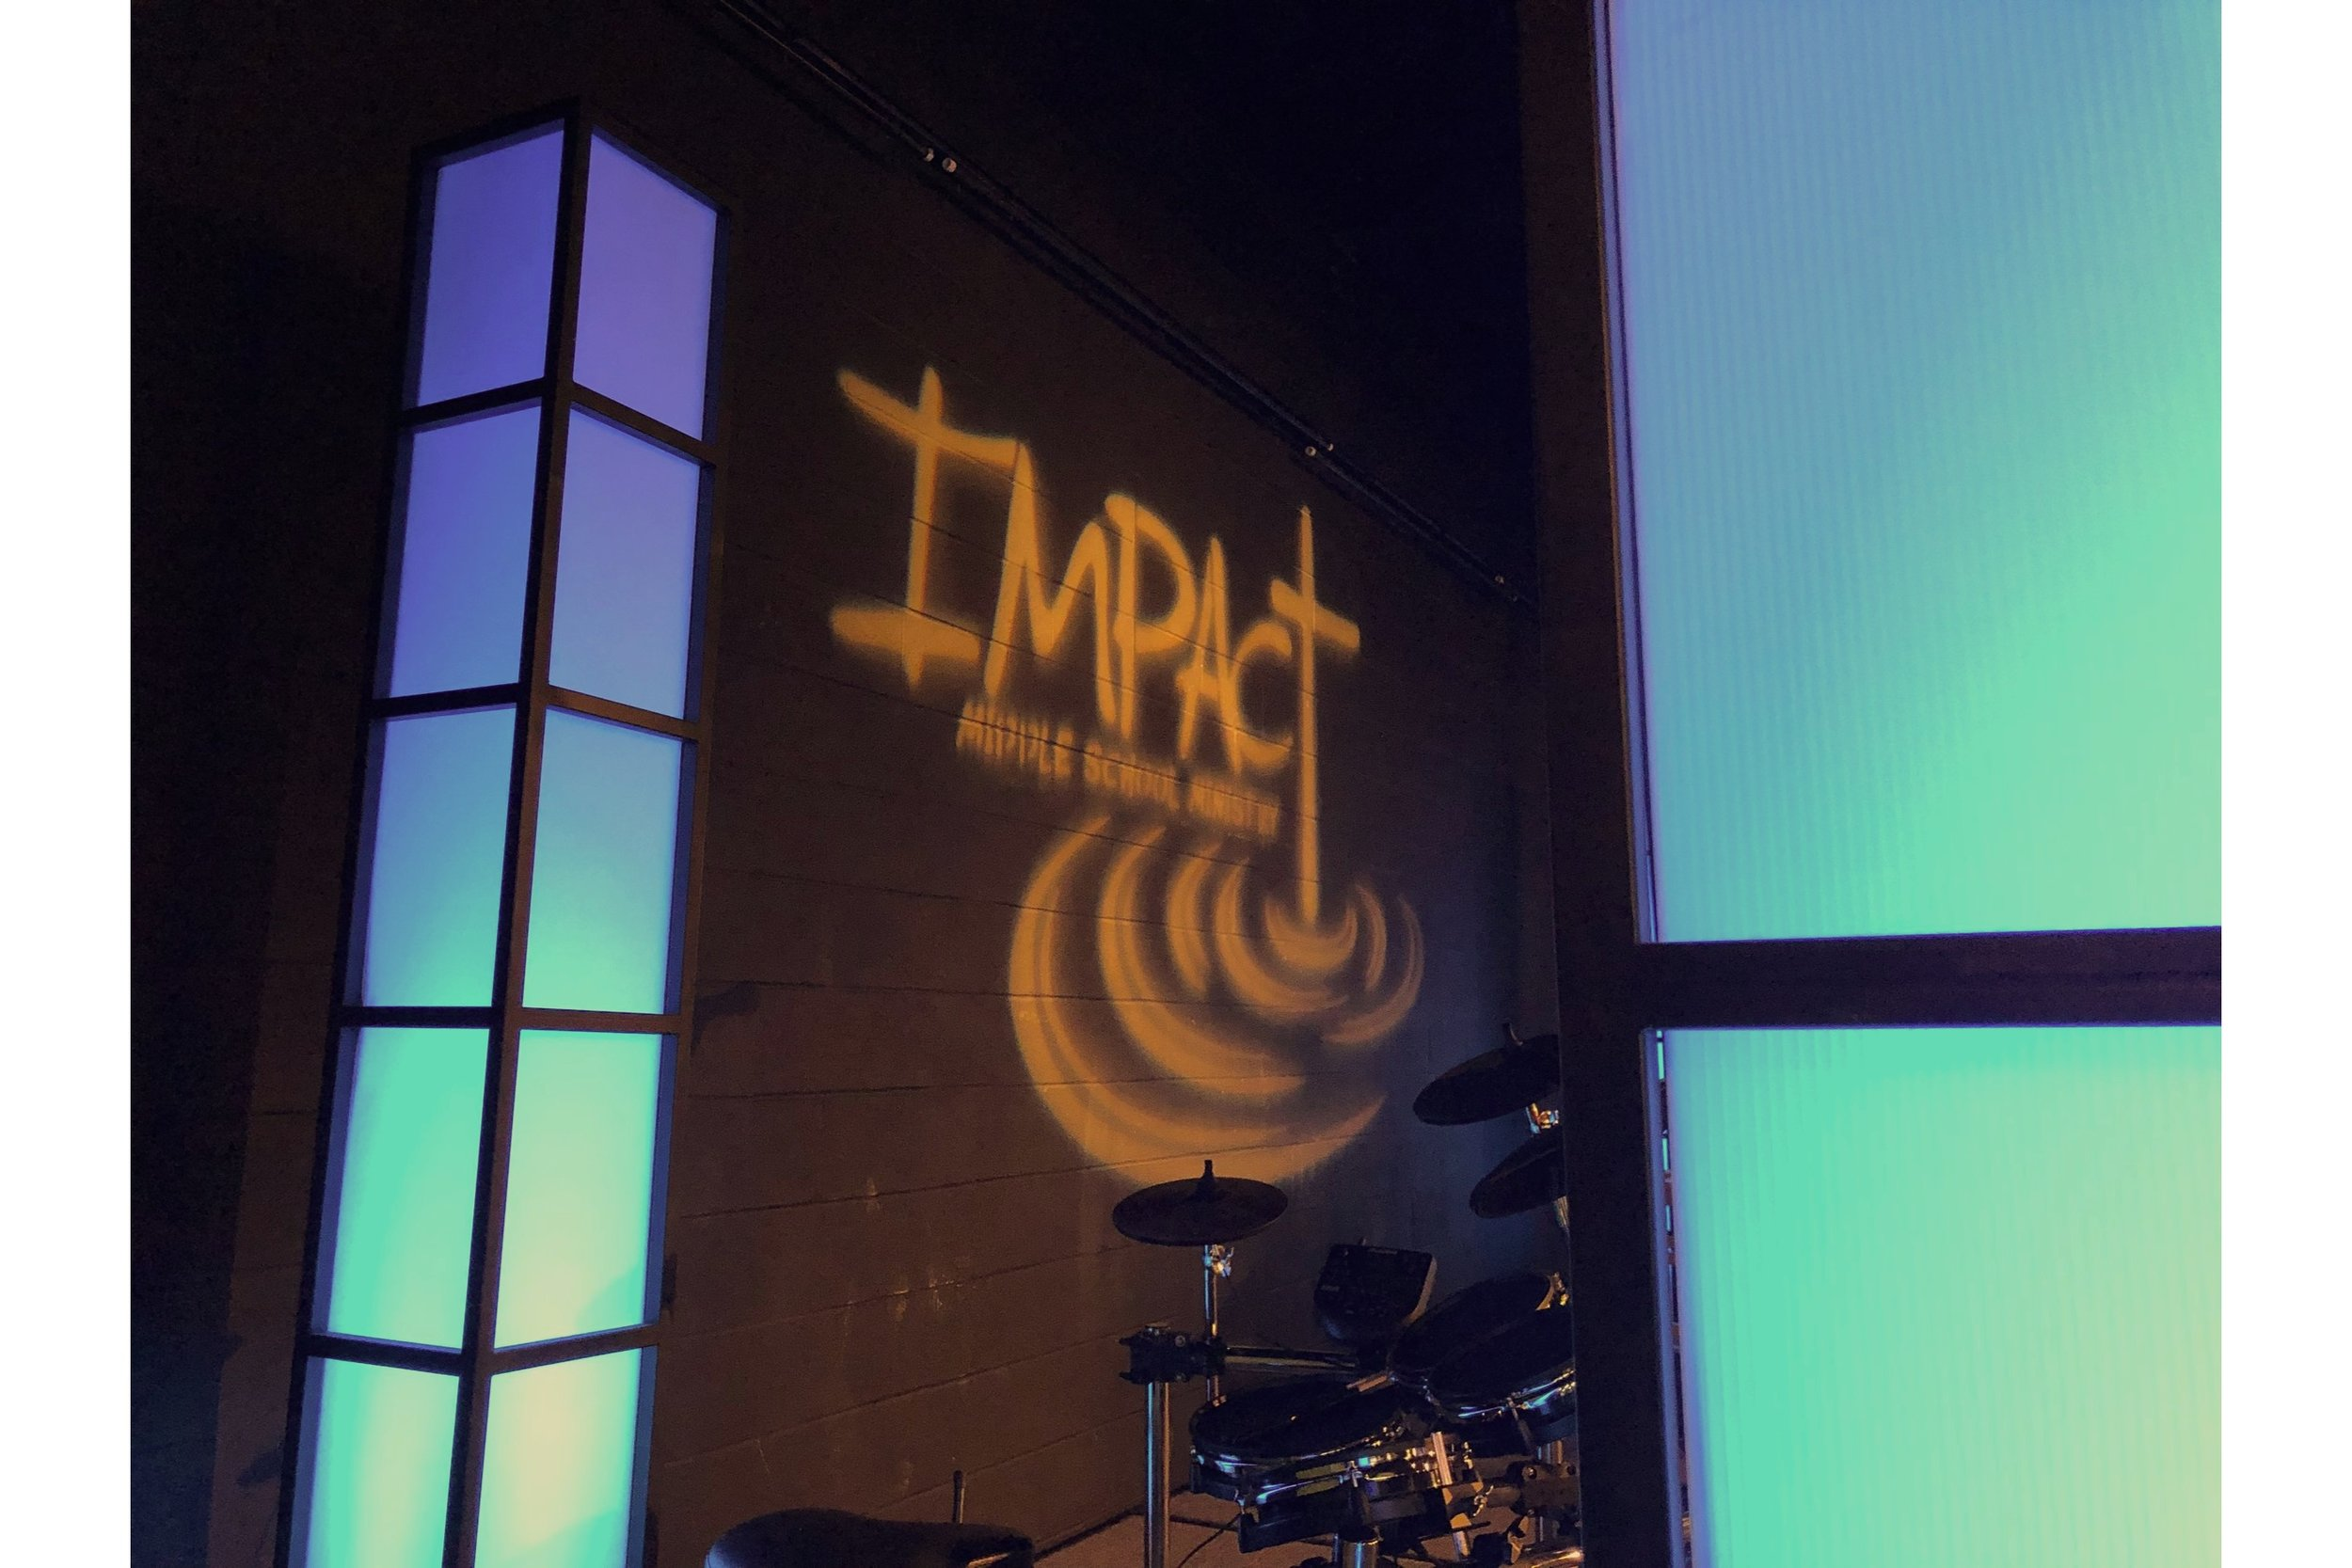 Sunday Mornings @ Impact - Check out what we are learning about on Sunday Mornings and check our weekly devotions.